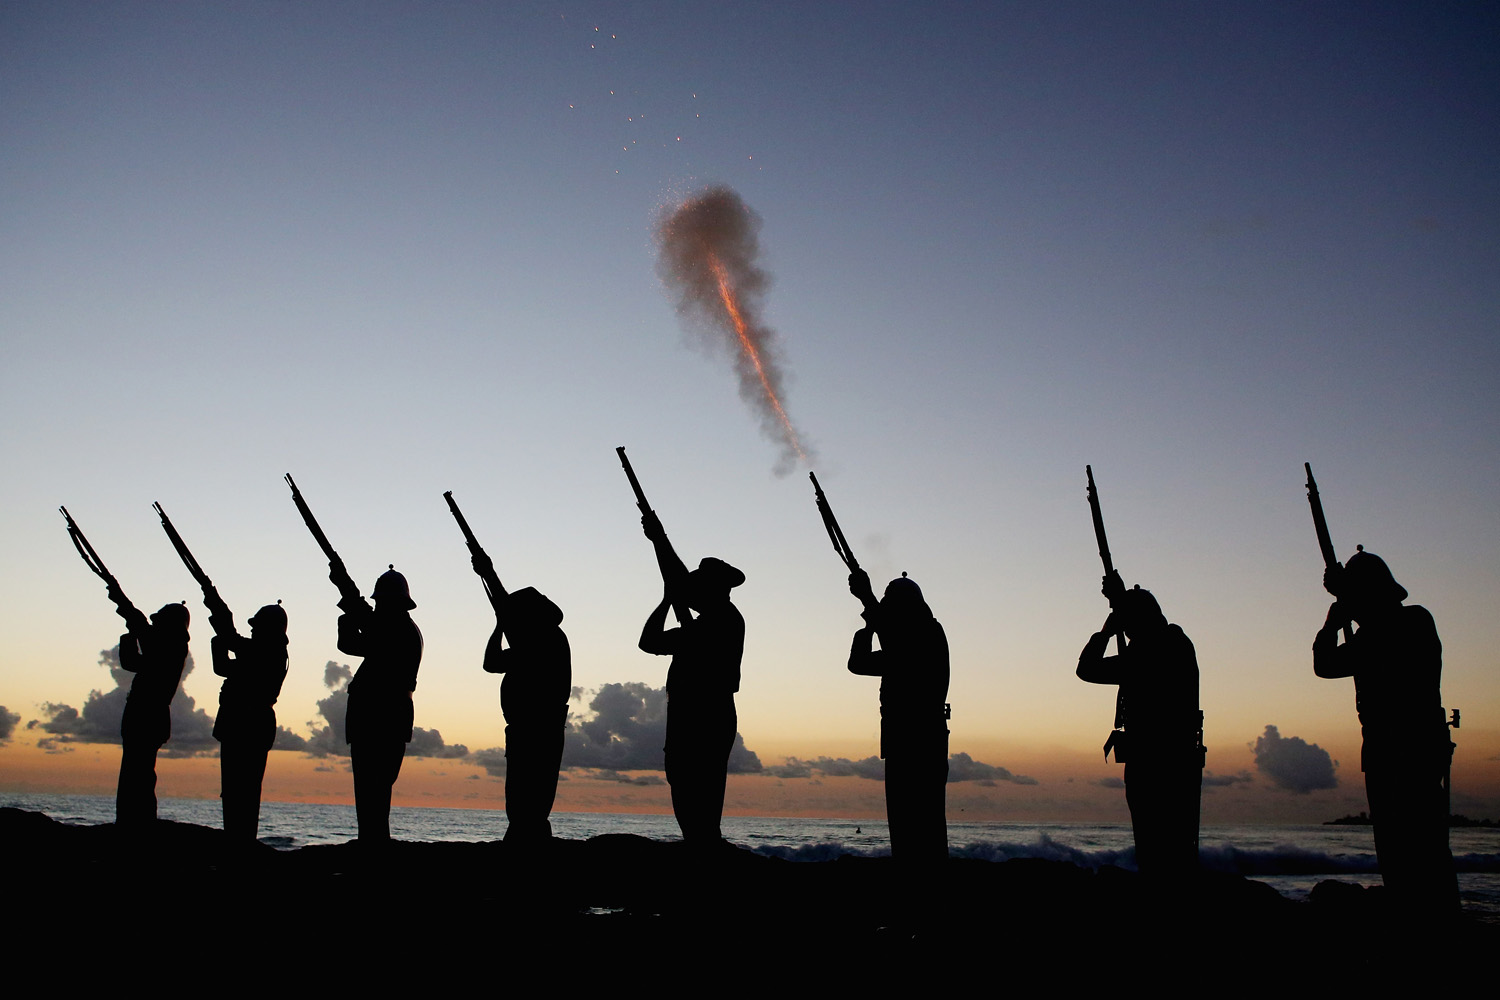 April 25, 2013. Members of the Albert Battery shoot a volley of fire during the ANZAC dawn service at Currumbin Surf Life Saving Club in Gold Coast, Australia.